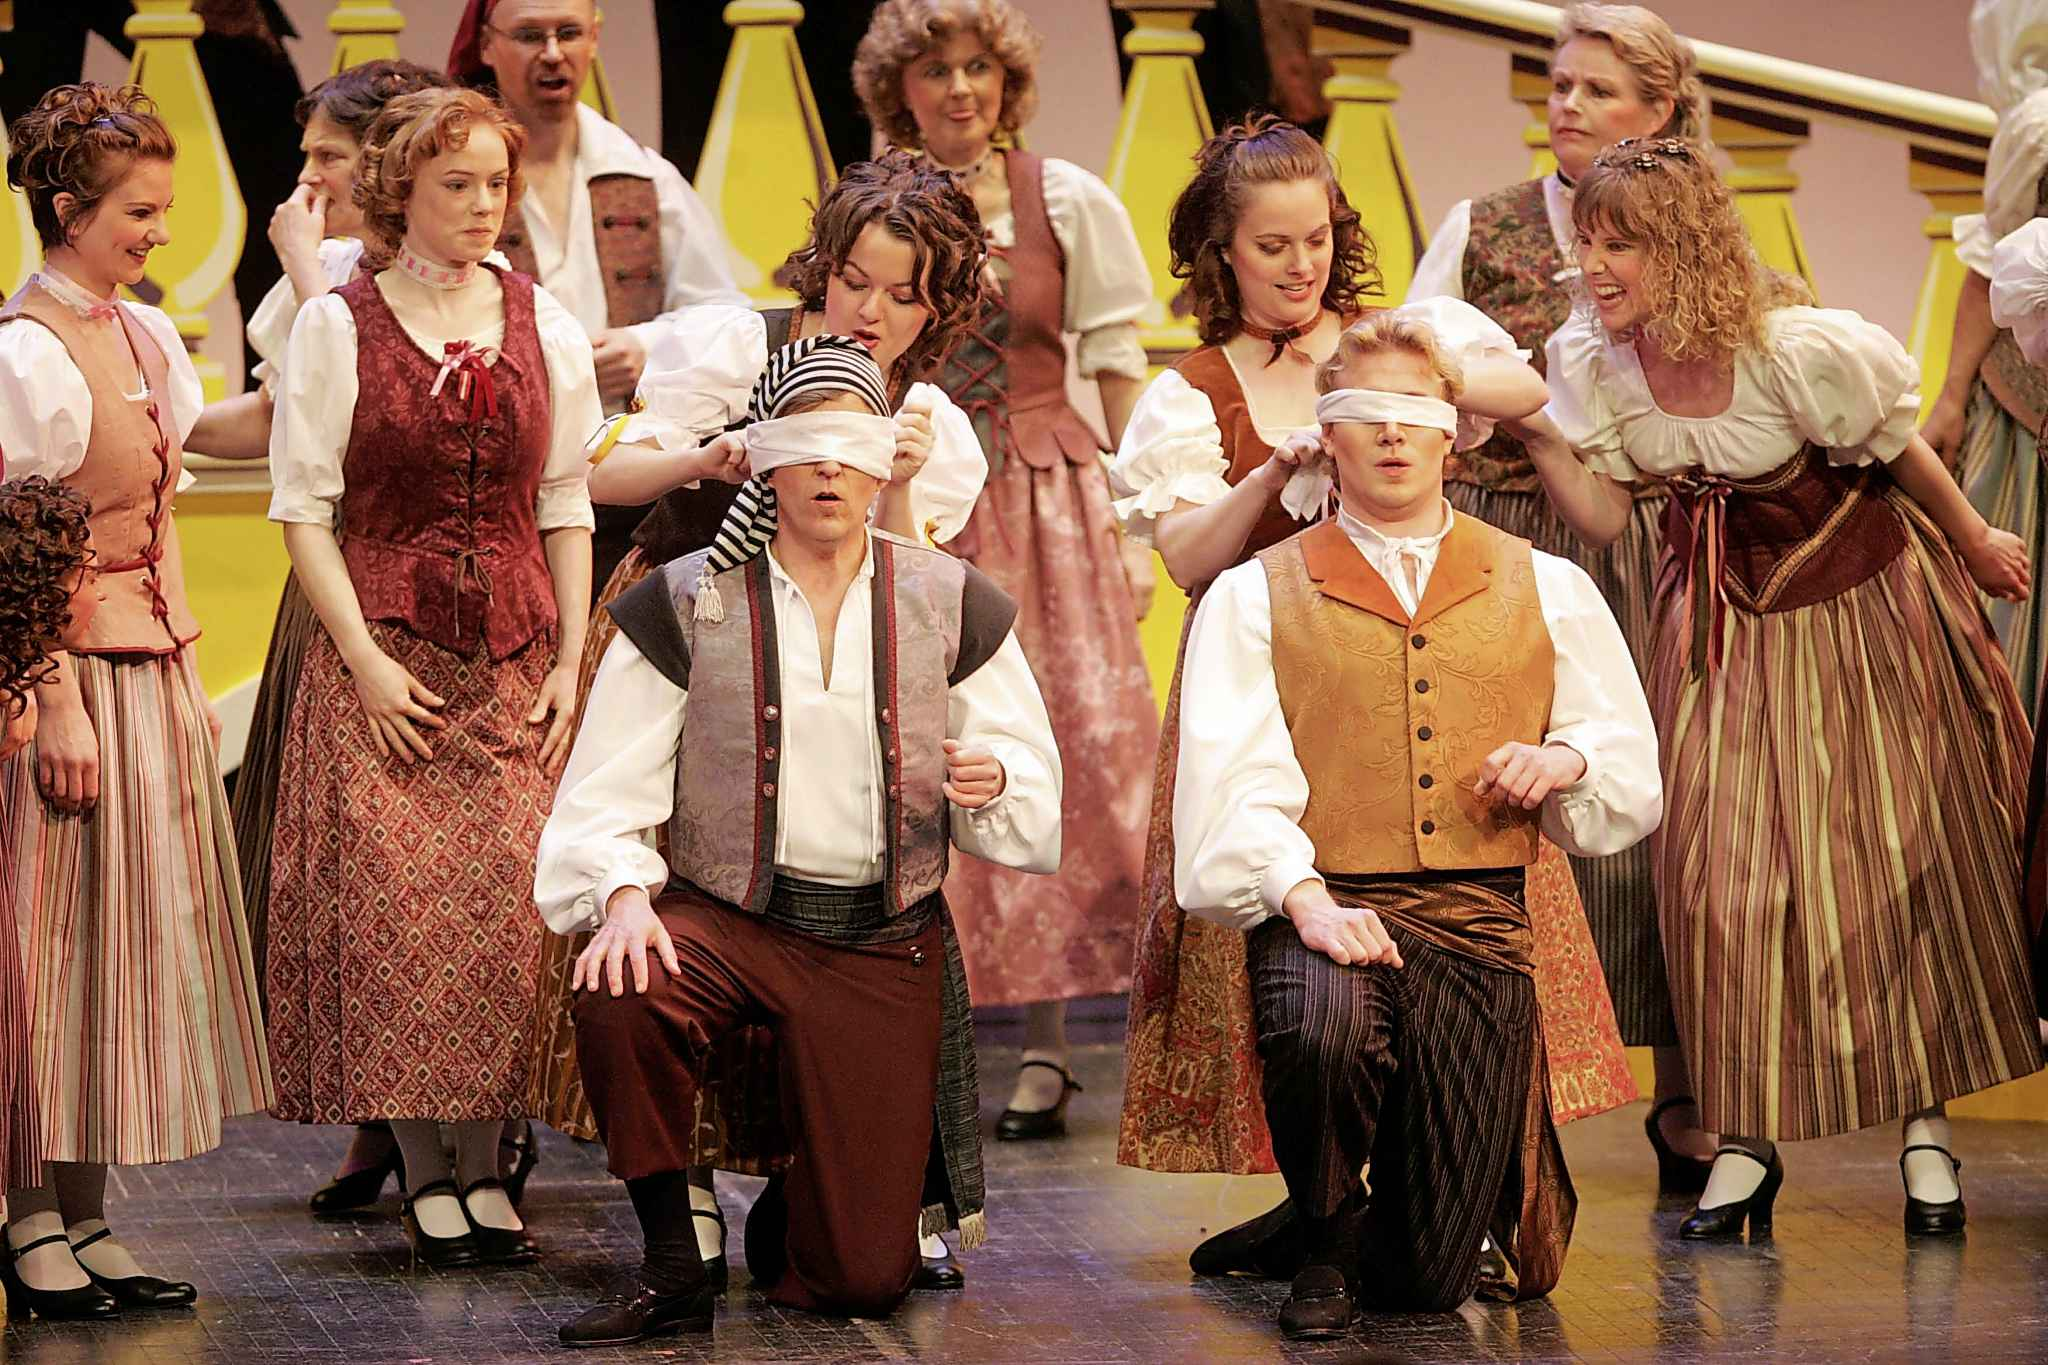 The comic opera The Gondoliers was staged in 2007. (Boris Minkevich / Winnipeg Free Press files)